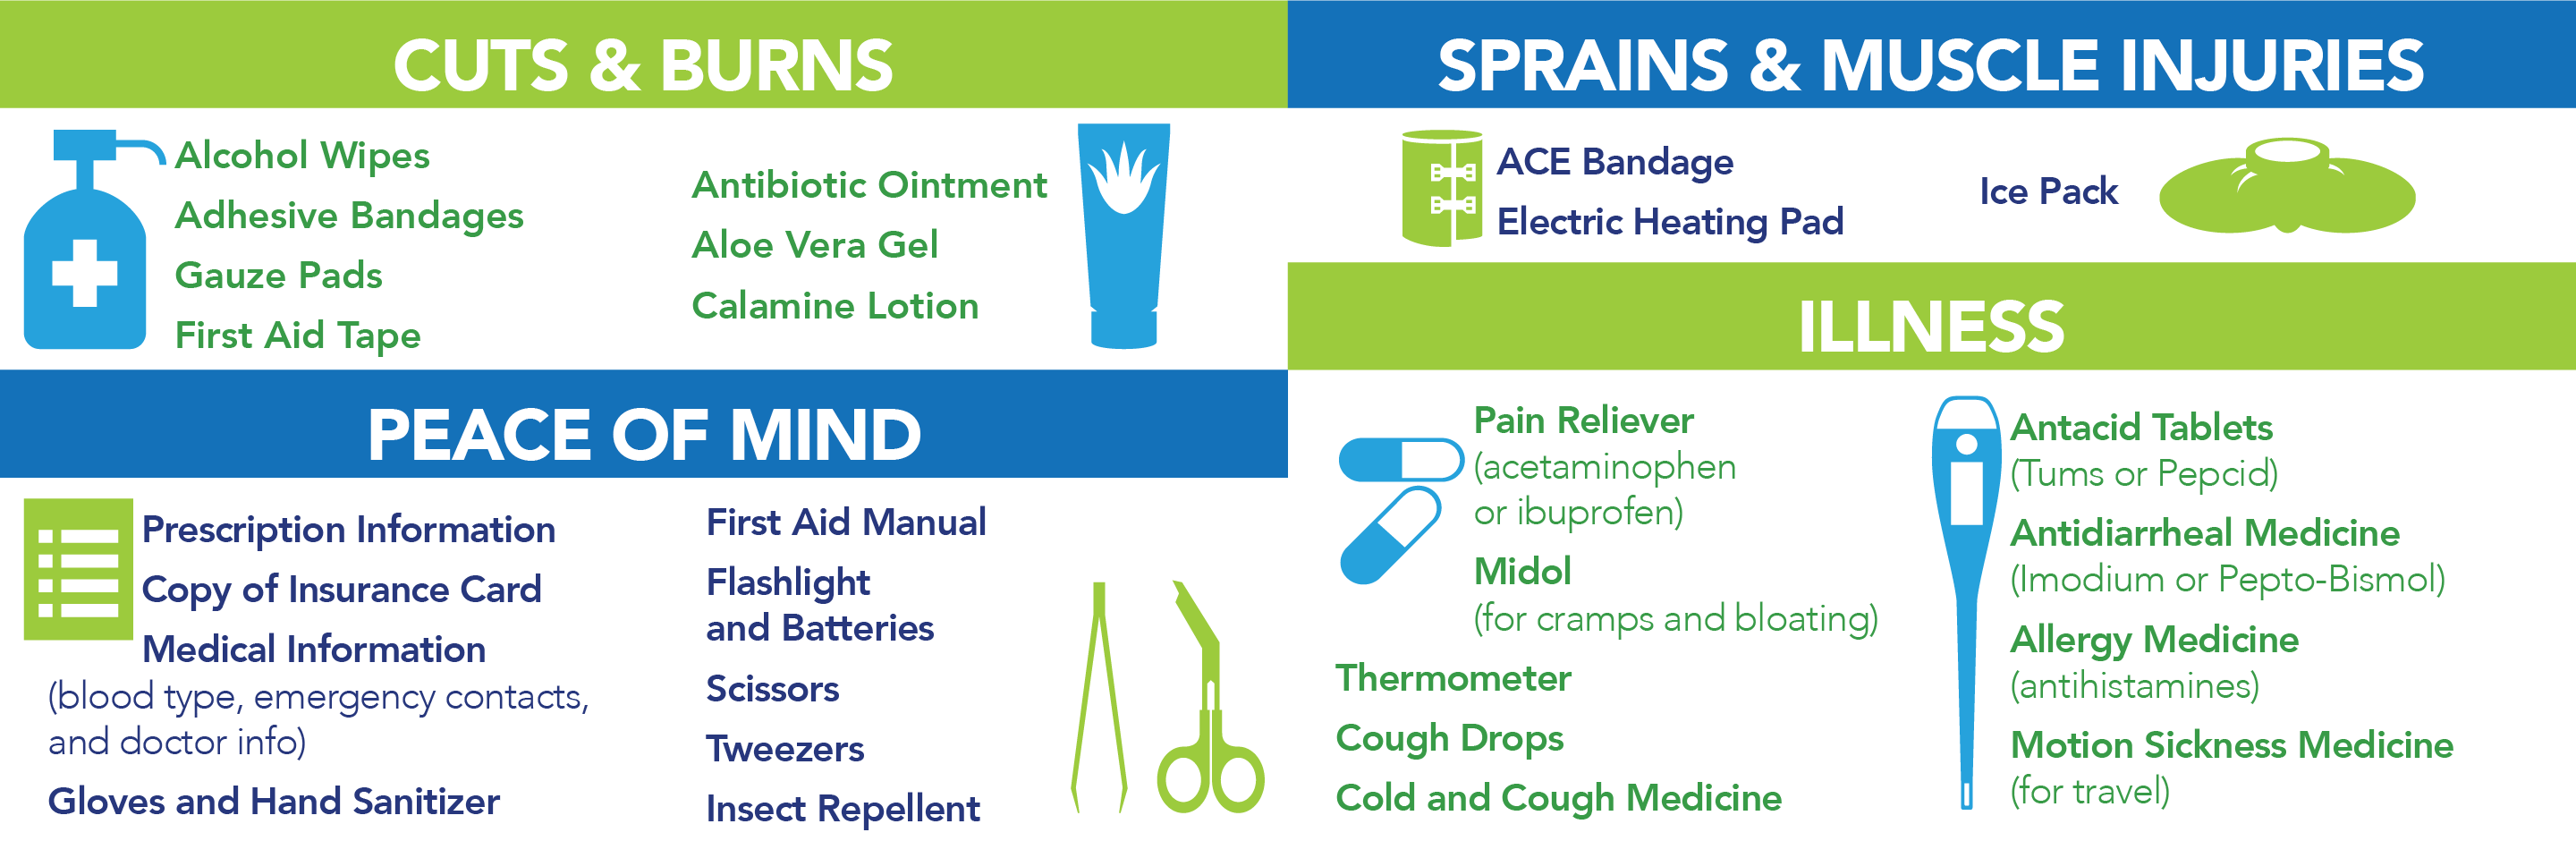 For cuts and burns: alcohol wipes, adhesive bandages, gauze pads, first aid tape, antibiotic ointment, Aloe Vera gel, and calamine lotion. For sprains and muscle injuries: ACE bandage, electric heating pad, and an ice pack. For illness: pain reliever, midol, thermometer, cough drops, cold and cough medicine, antacid tablets, antidiarrheal medicine, allergy medicine, and motion sickness medicine. For peace of mind: prescription information, copy of insurance card, medical information, gloves and hand sanitizer, first aid manual, flashlight and batteries, scissors, tweezers, and insect repellent.